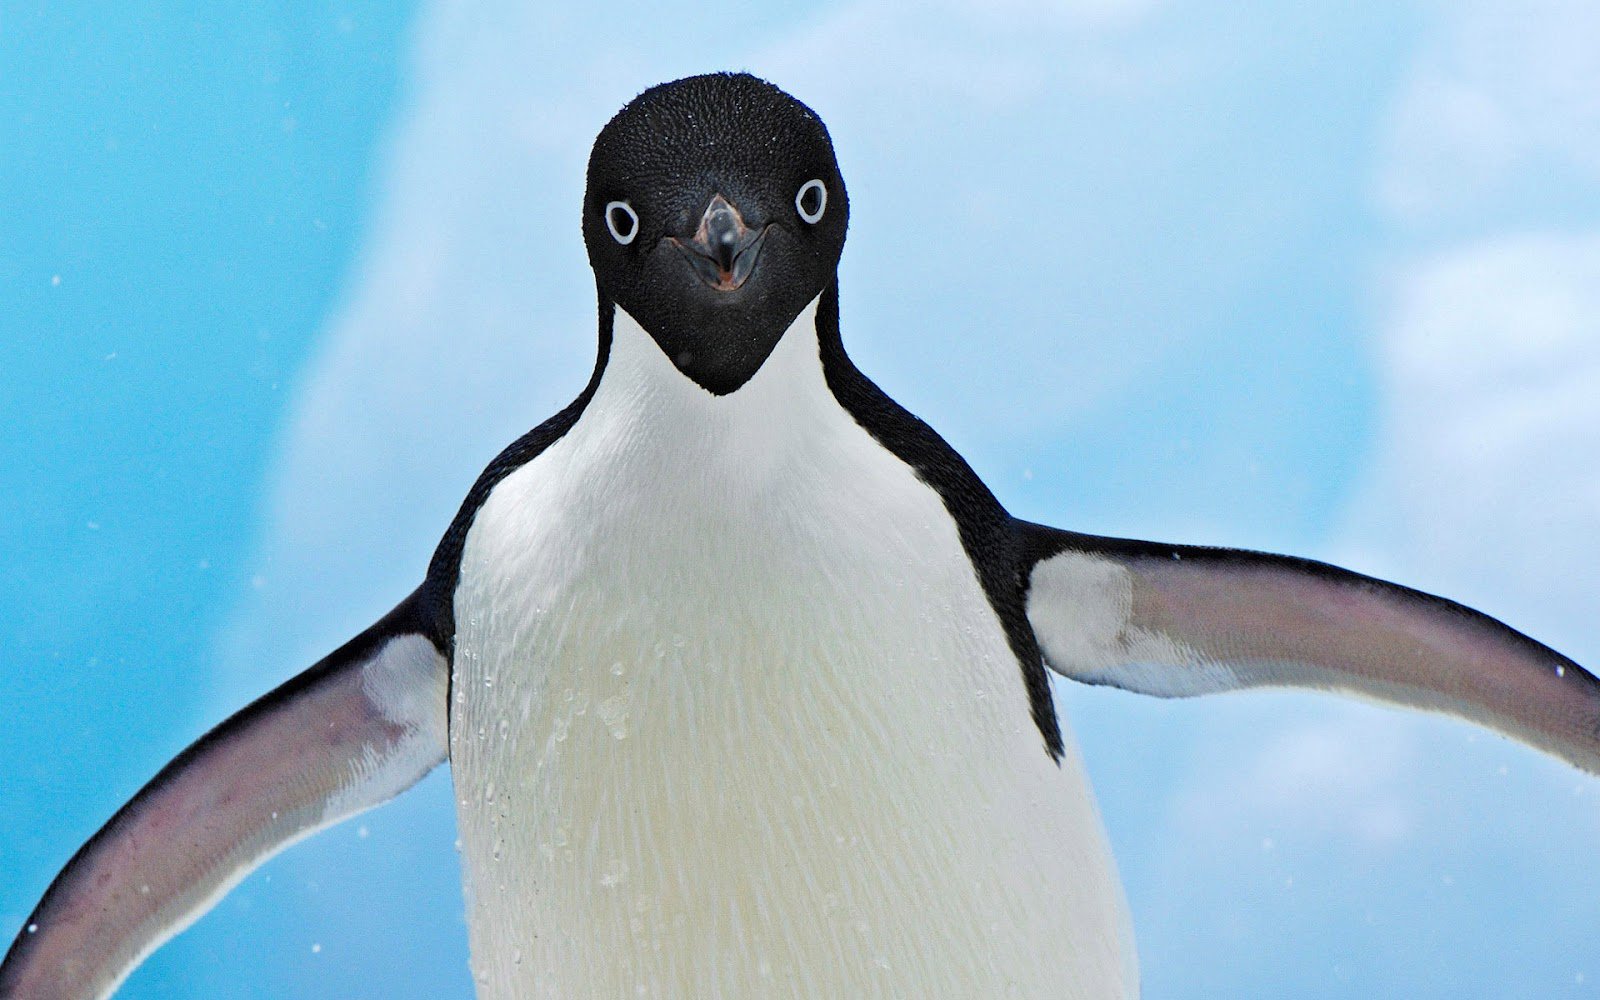 Penguin Looking Into Camera , HD Wallpaper & Backgrounds